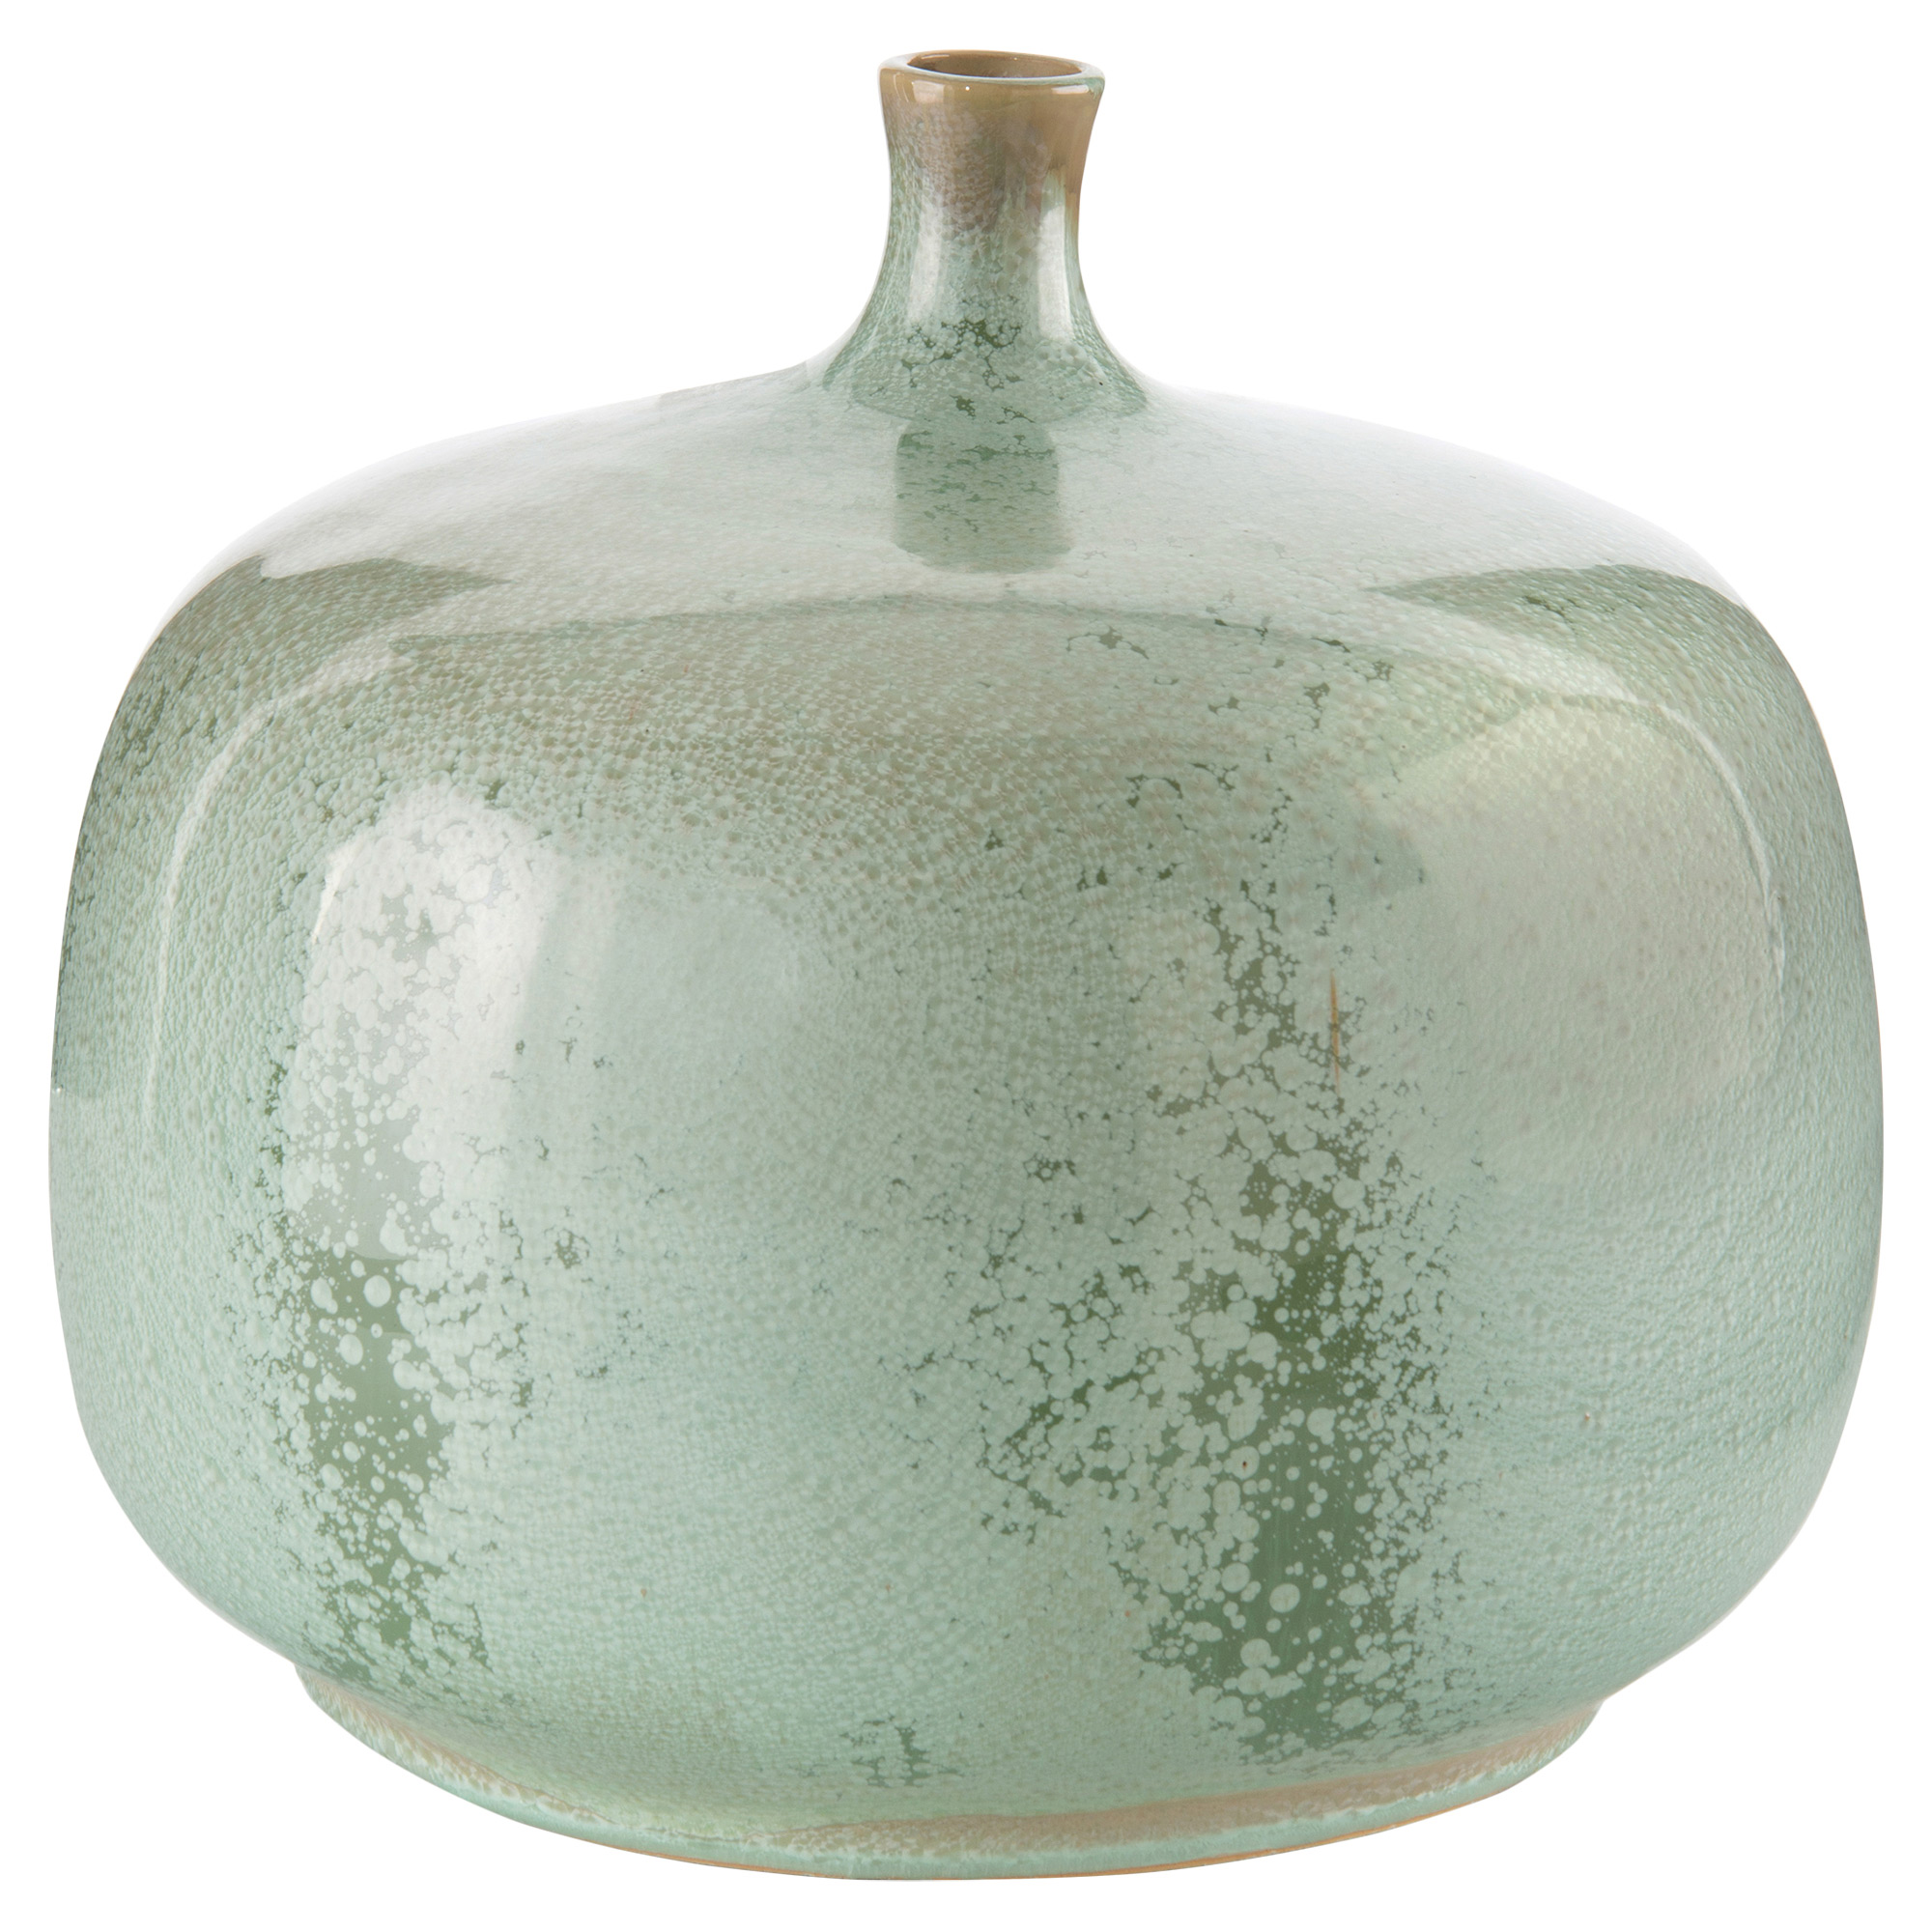 Ling Global Bazaar Reactive Glazed Green Decorative Jar